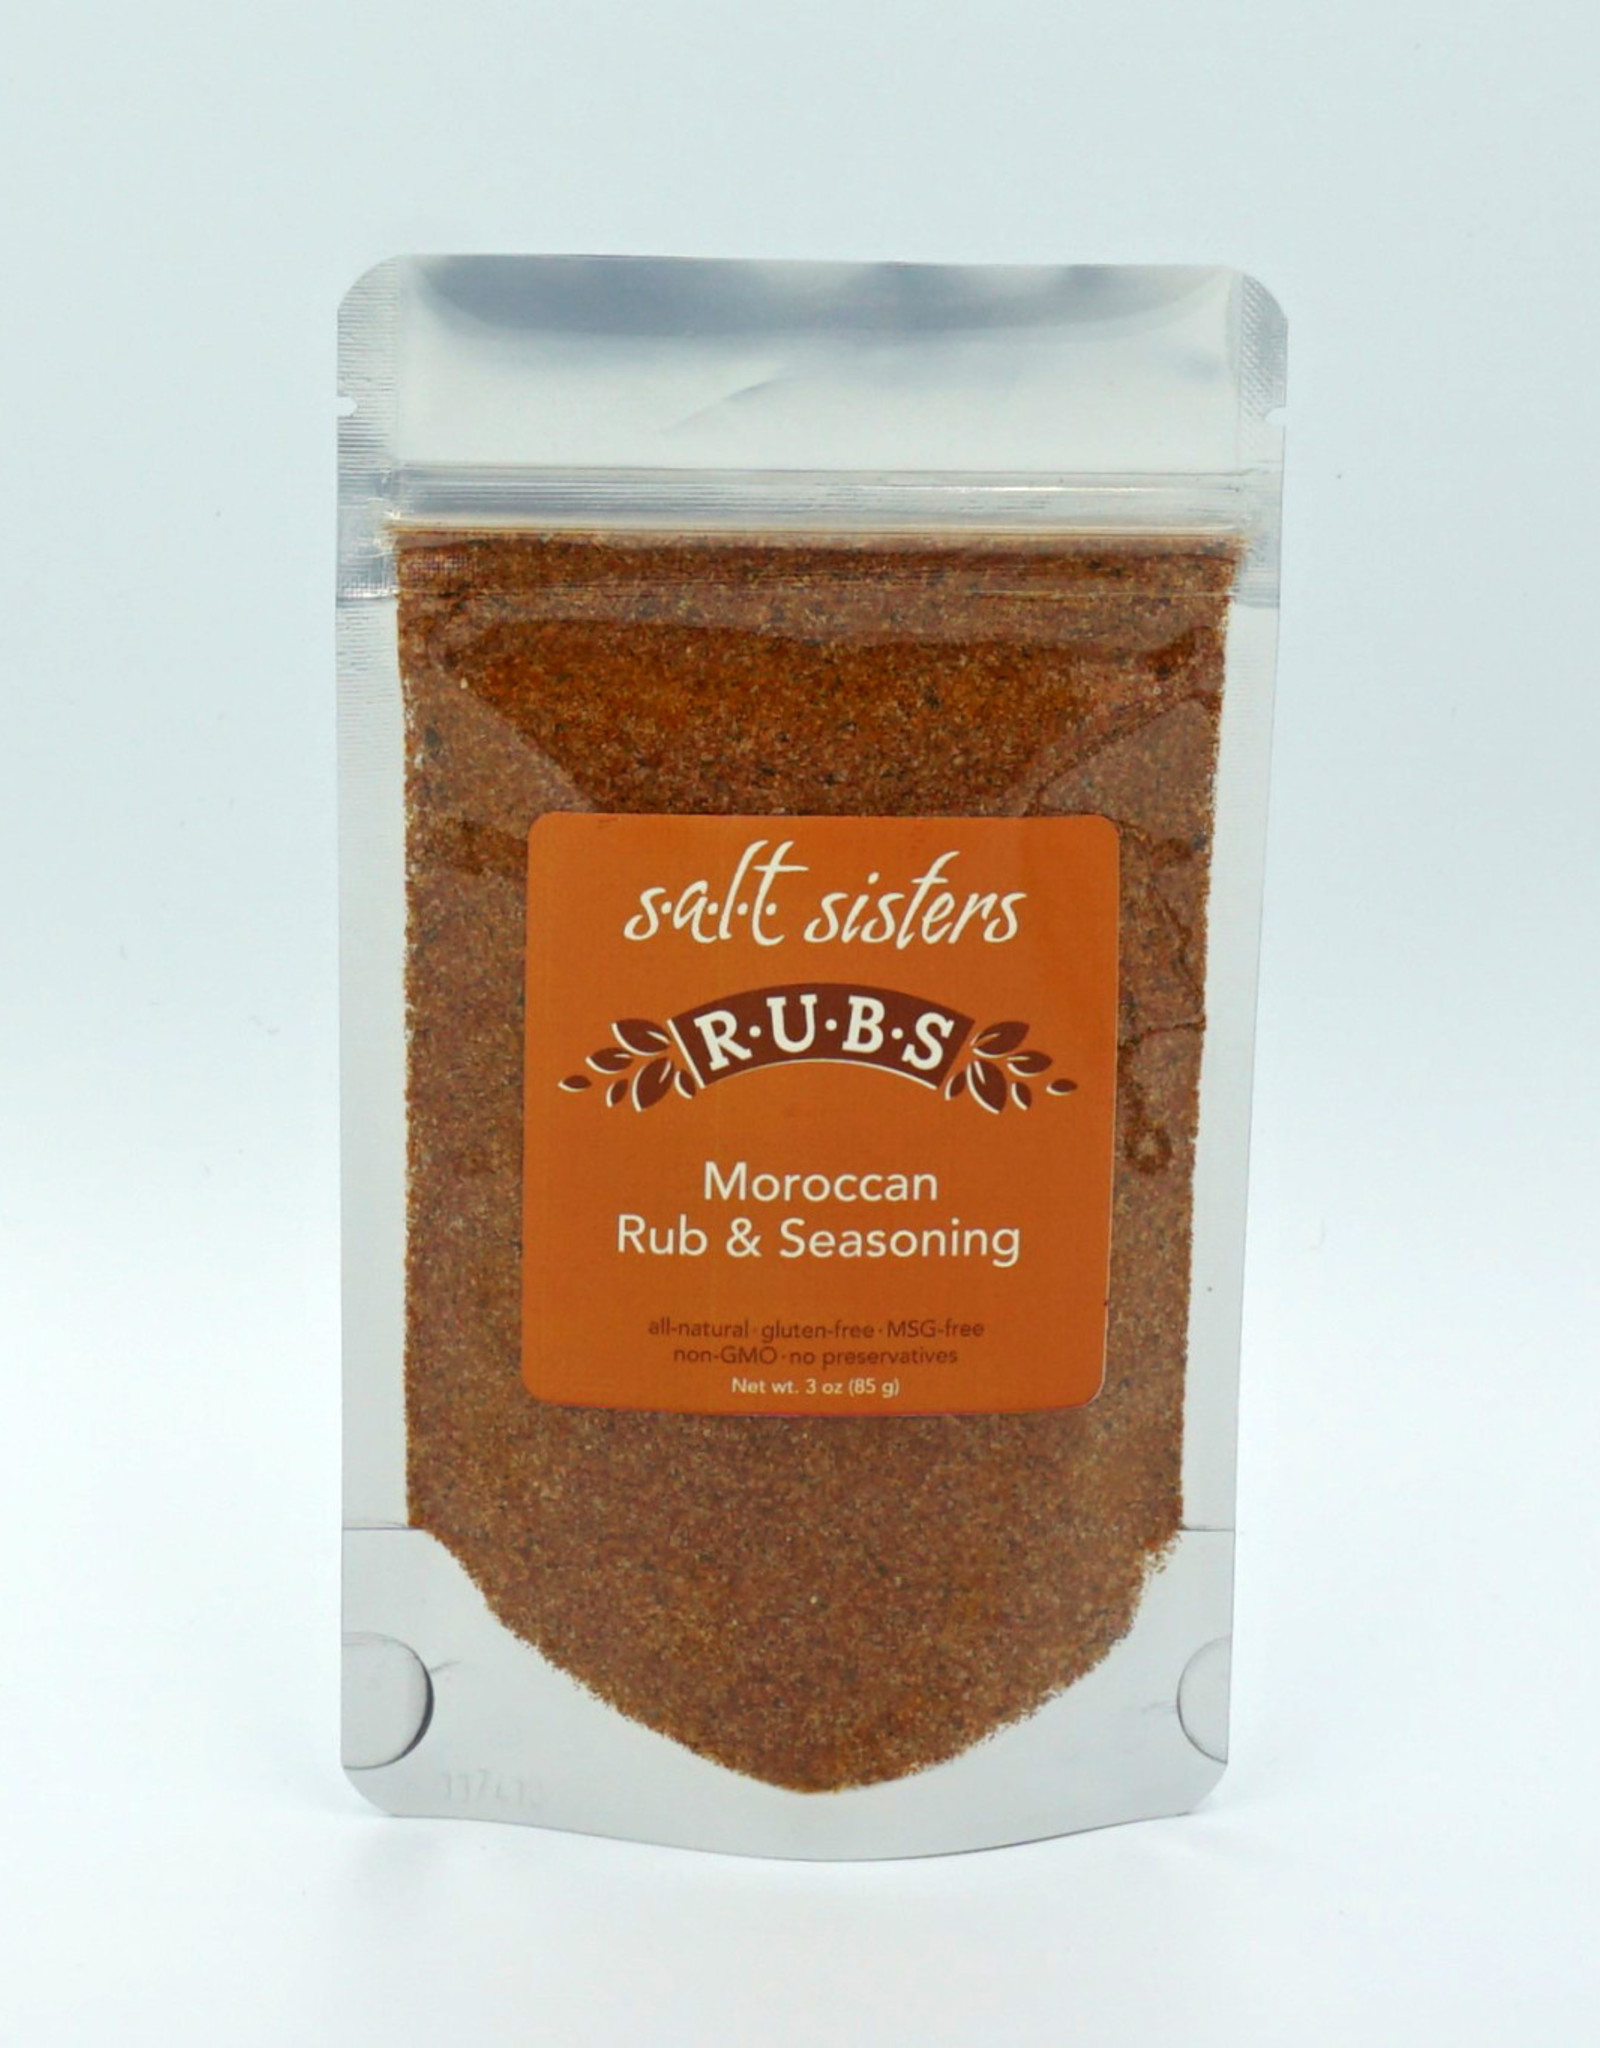 s.a.l.t. sisters MOROCCAN RUB & SEASONING 3oz